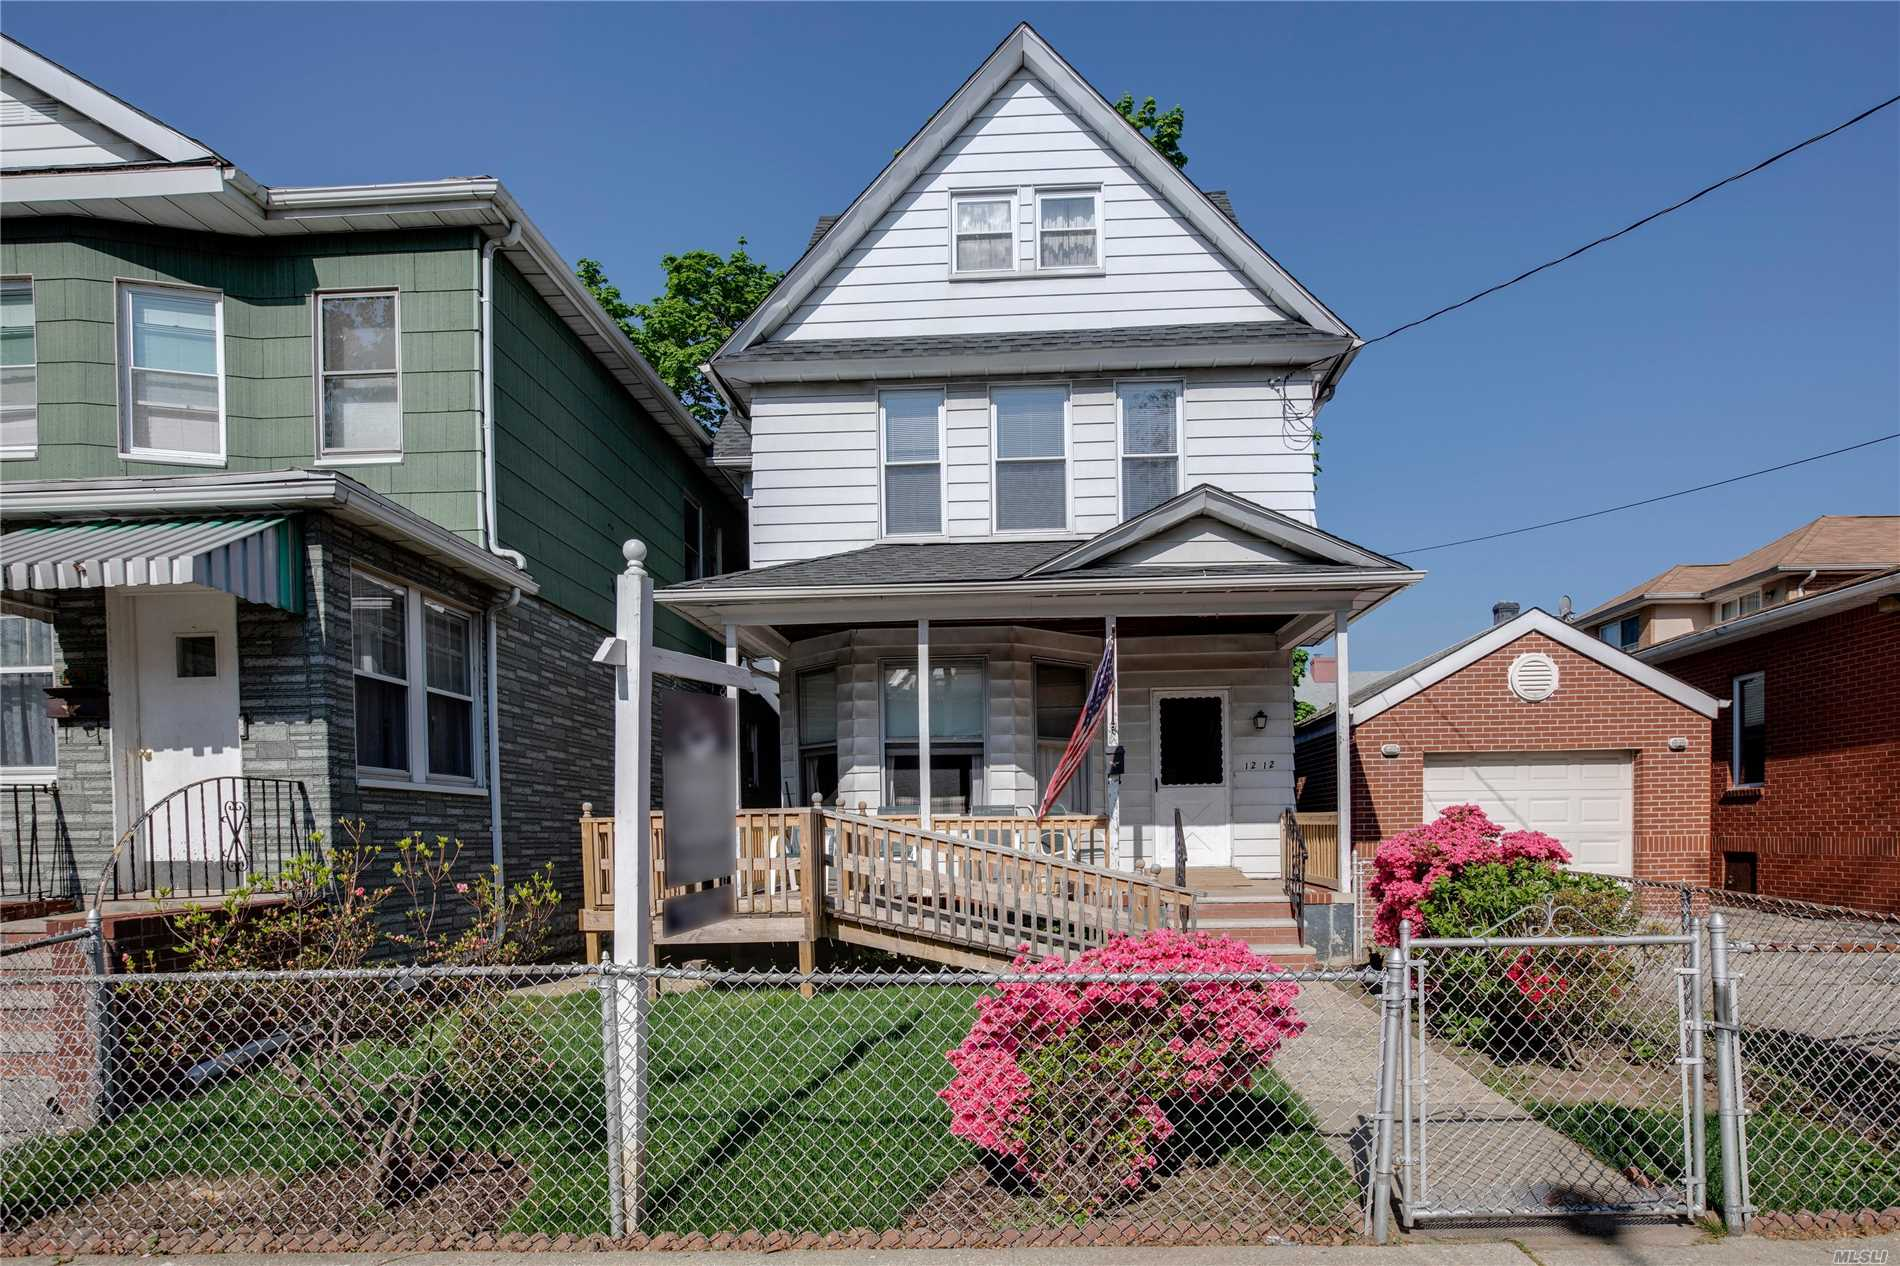 Substantial Price Improvement!! Won't Last! Large Rooms, Needs Updating,  Nice Yard Space.  Being Sold As Is